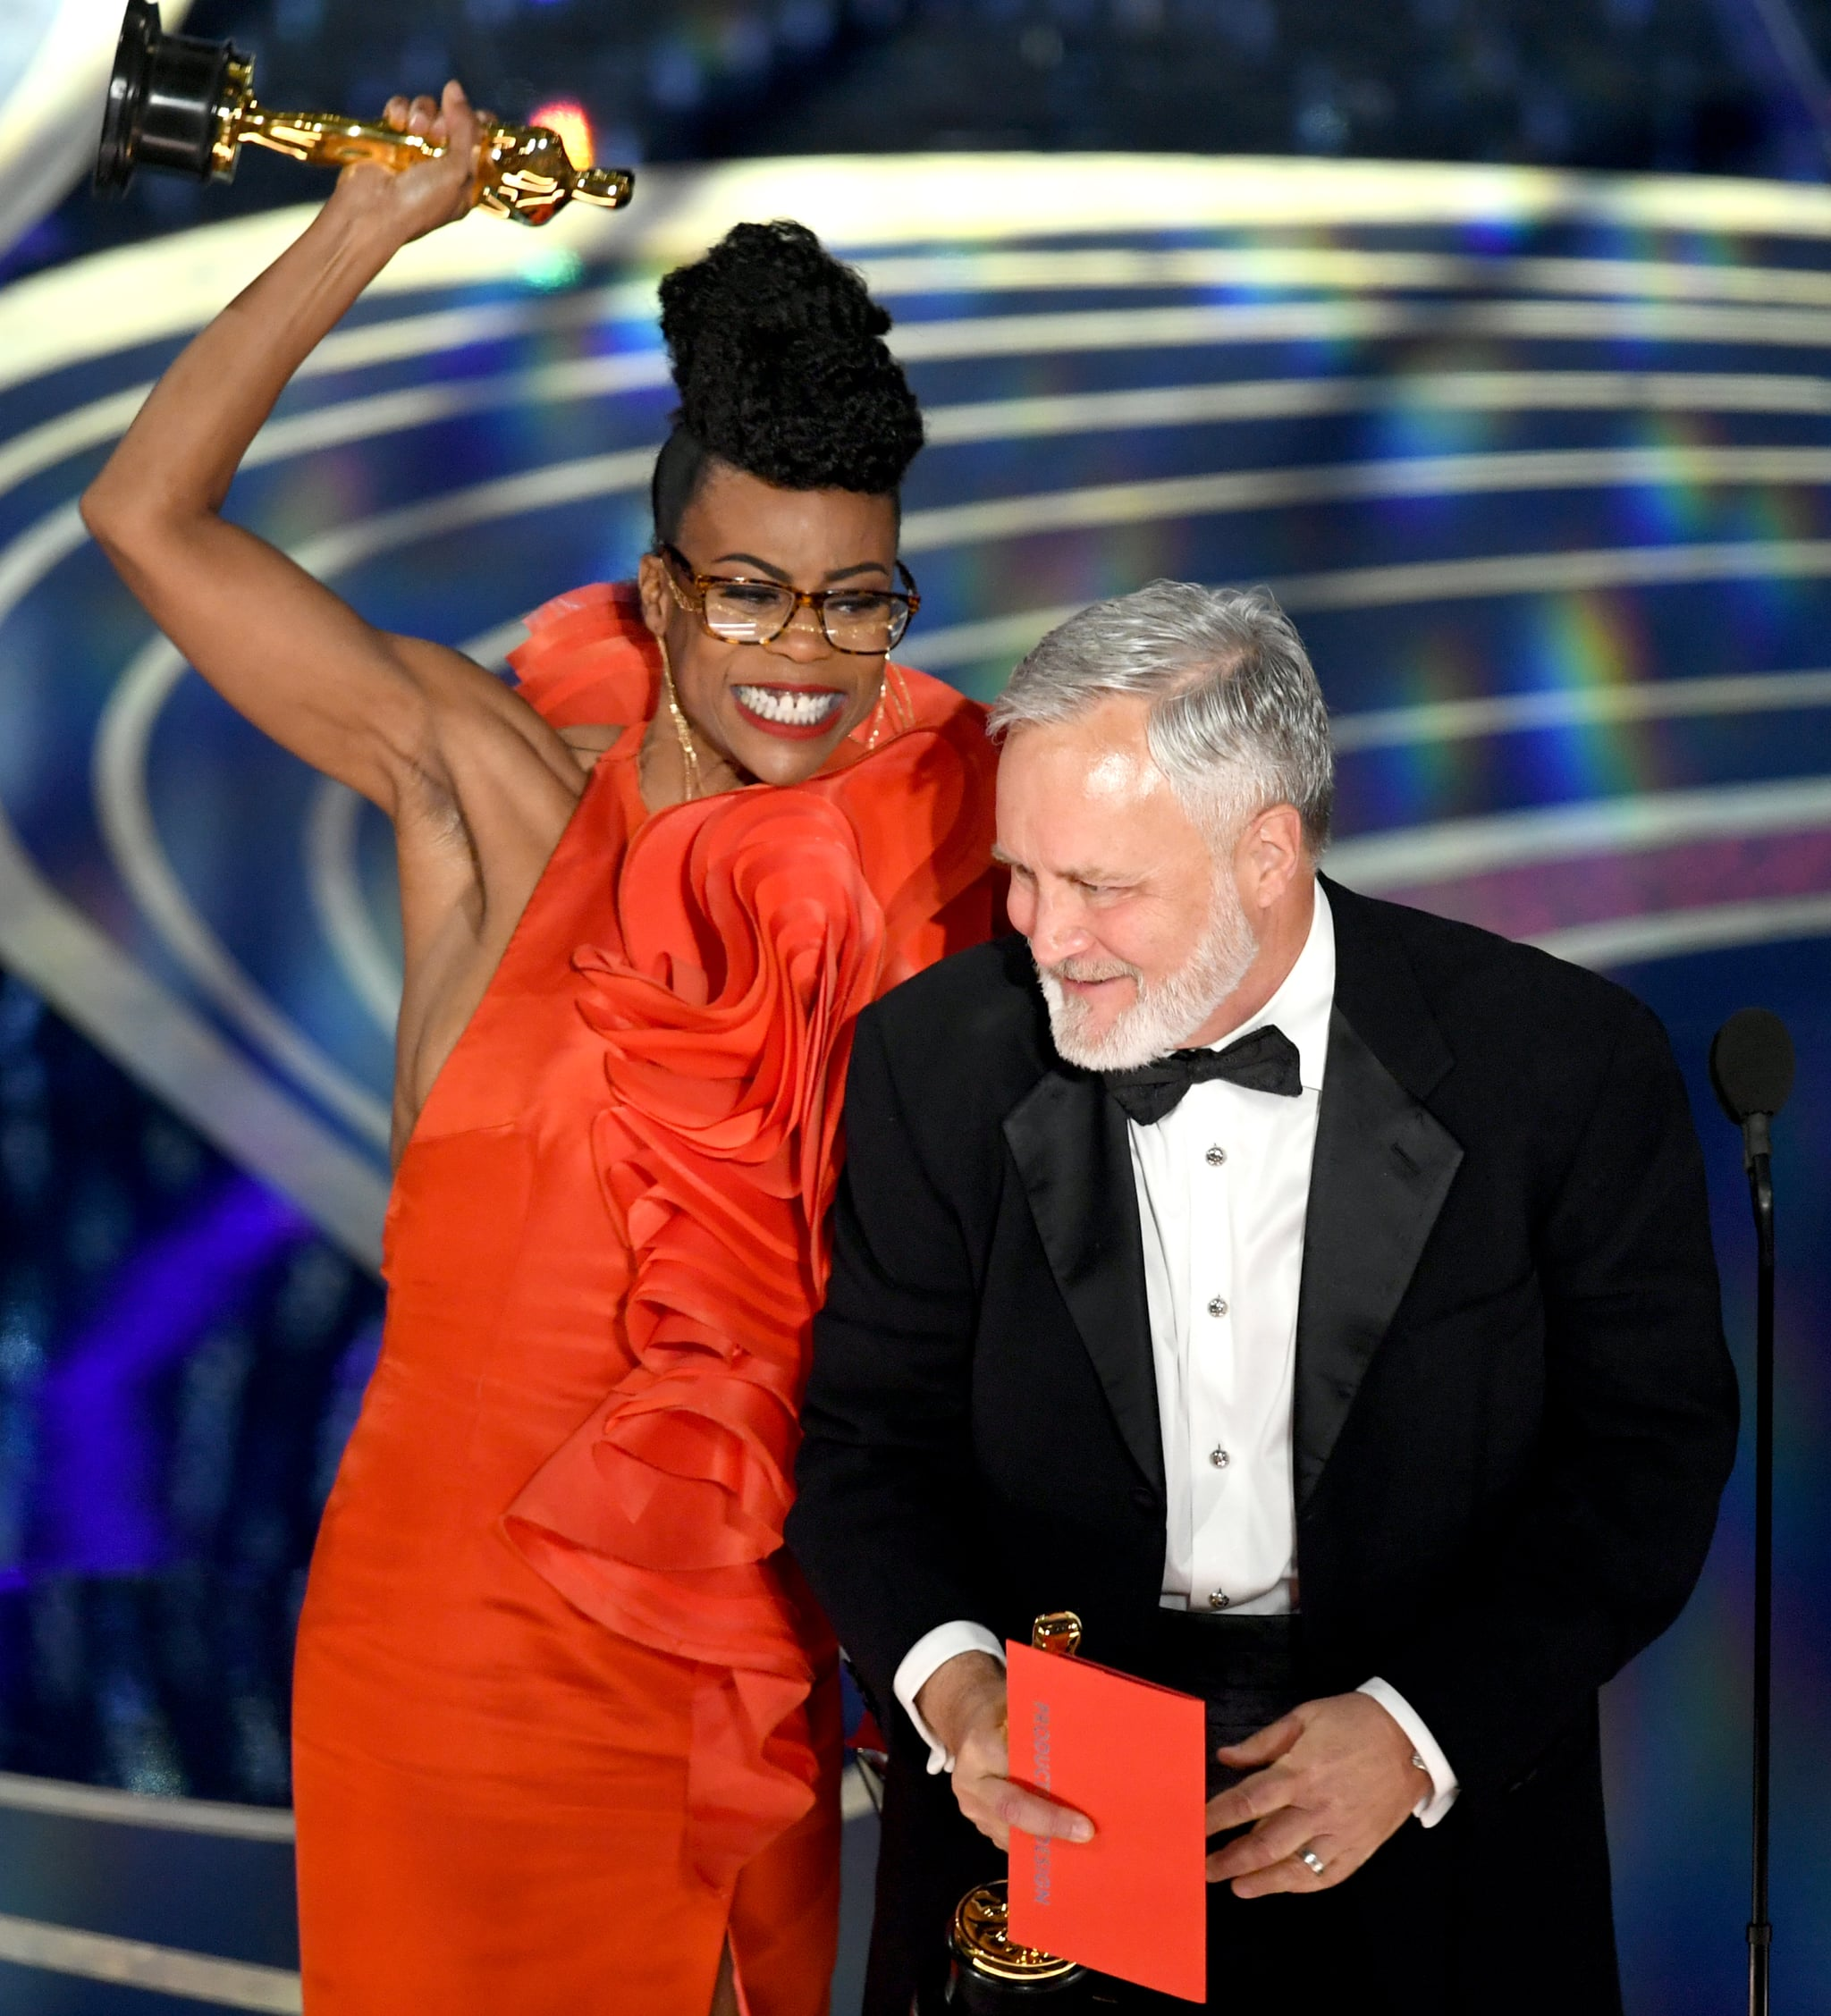 HOLLYWOOD, CALIFORNIA - FEBRUARY 24: (L-R) Hannah Beachler and  Jay Hart accept the Production Design award for 'Black Panther' onstage during the 91st Annual Academy Awards at Dolby Theatre on February 24, 2019 in Hollywood, California. (Photo by Kevin Winter/Getty Images)